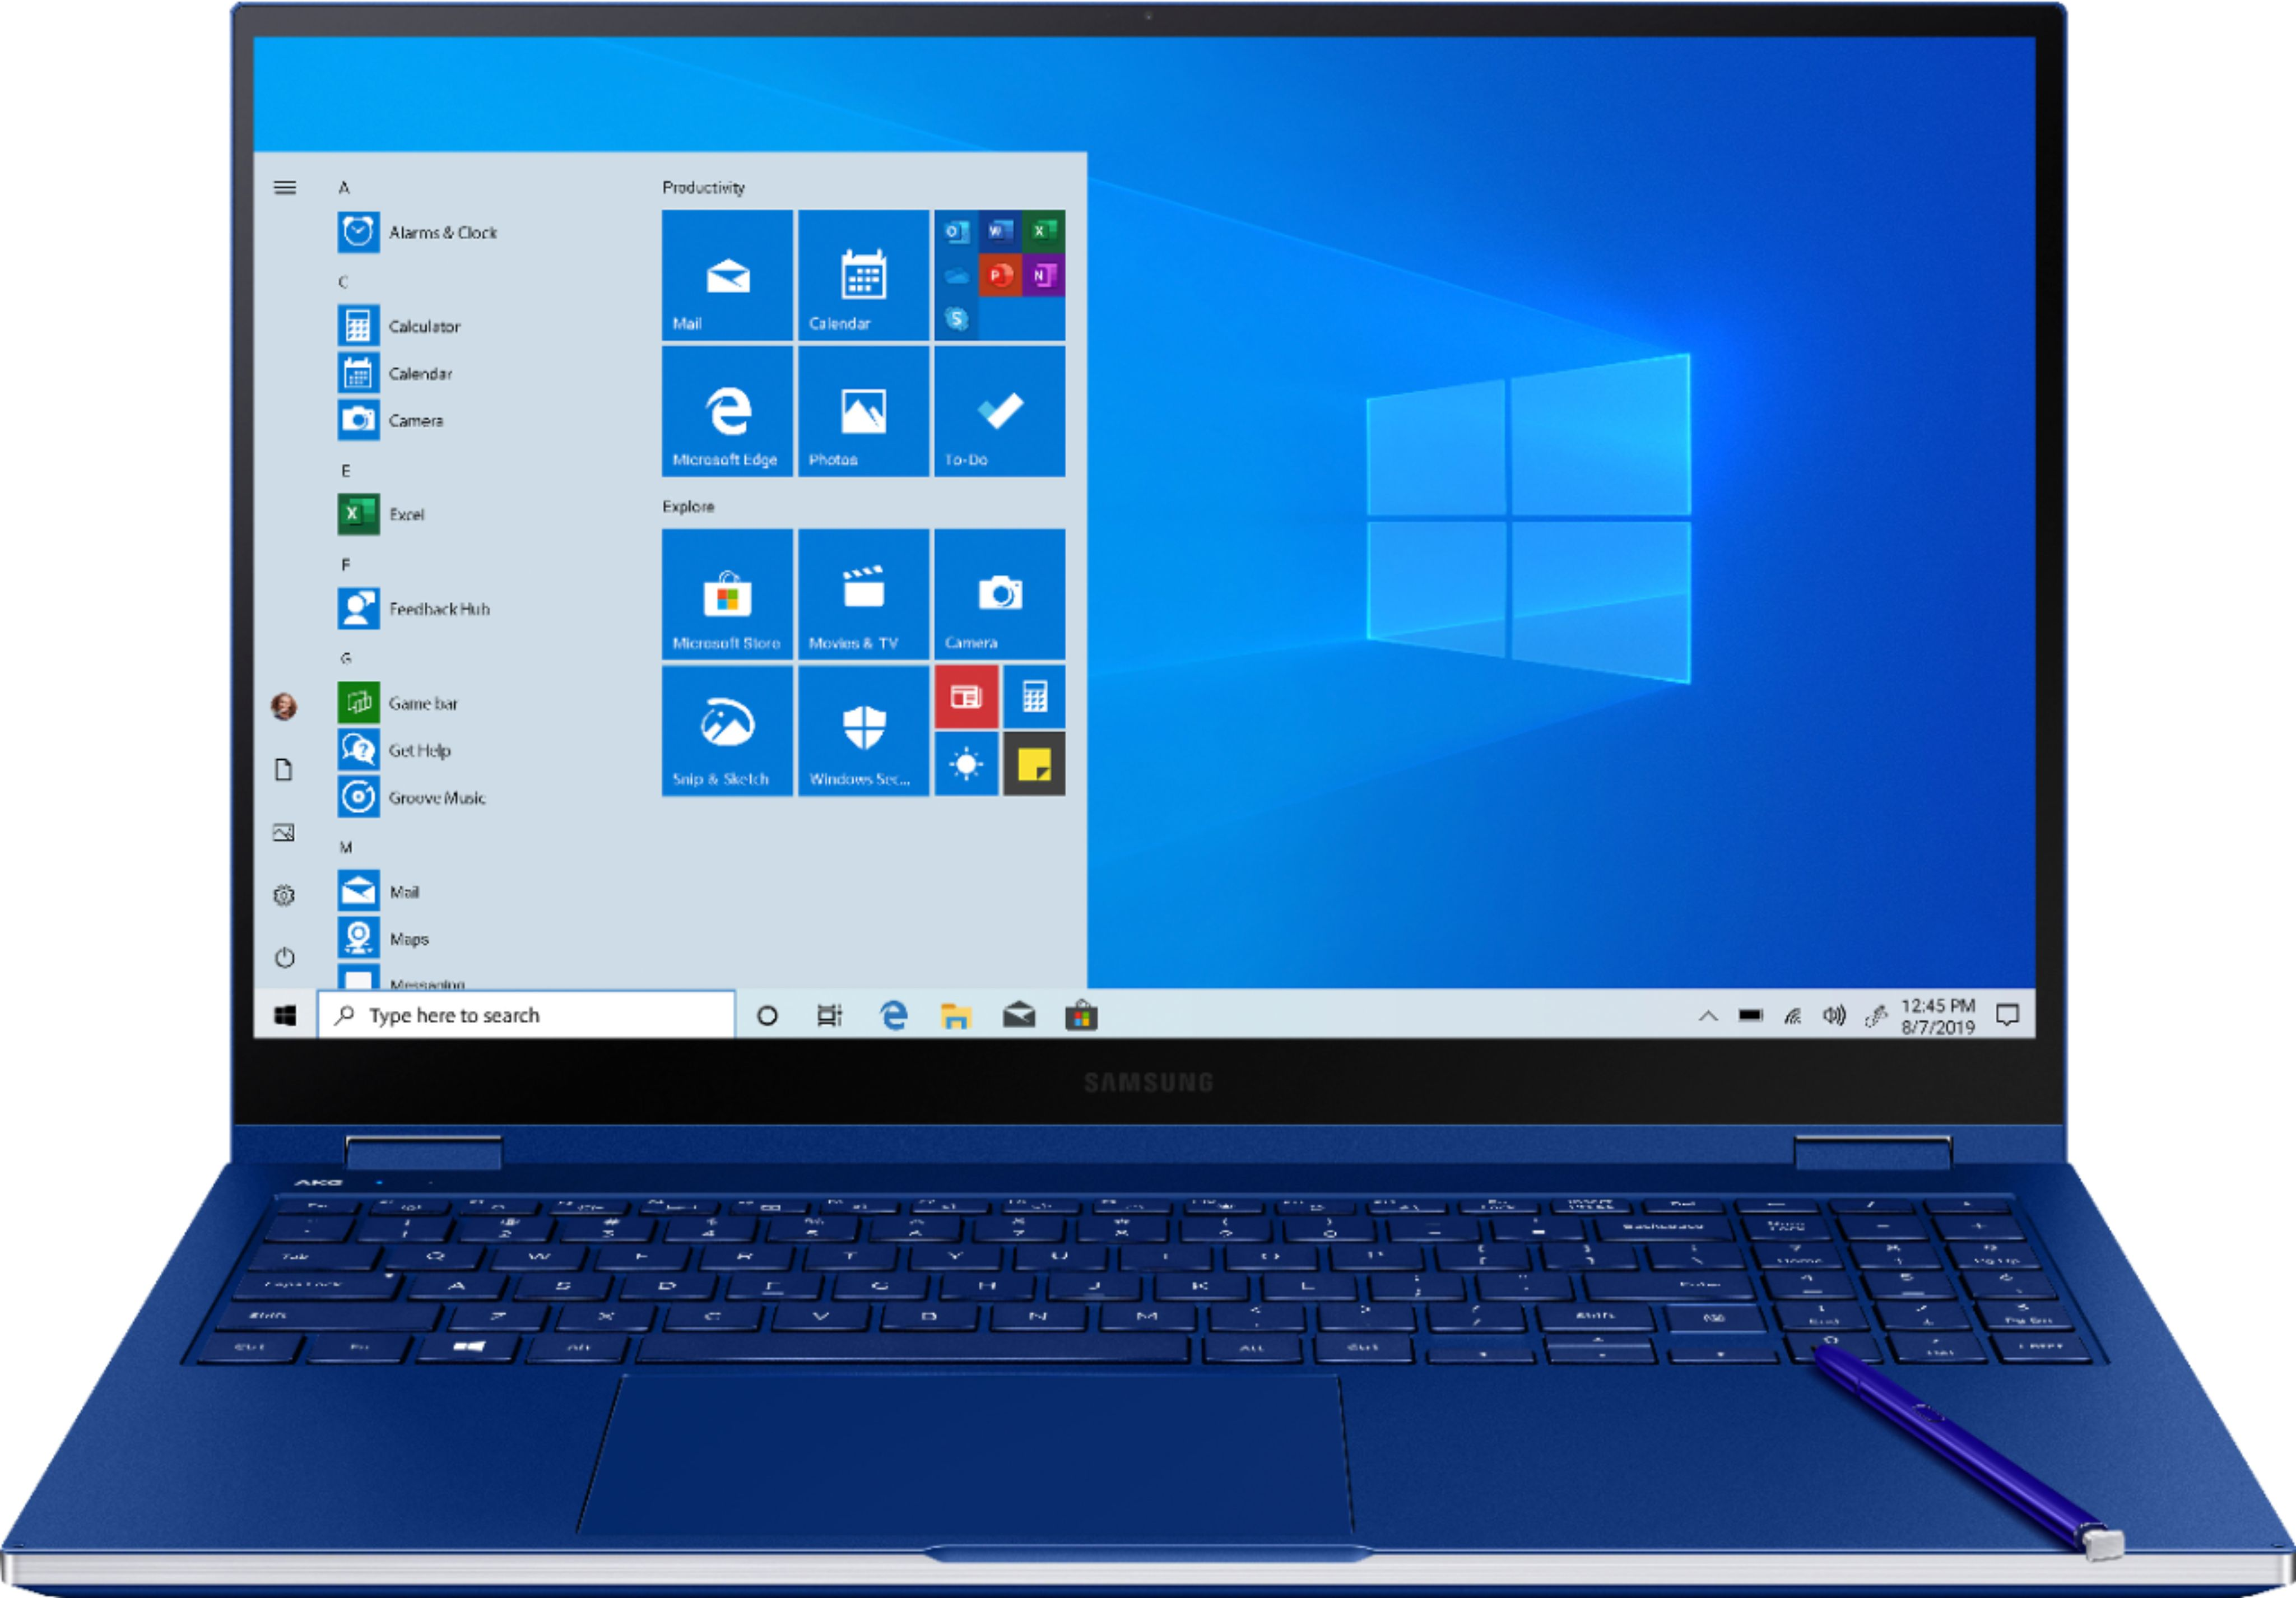 """Front Zoom. Samsung - Galaxy Book Flex 2-in-1 15.6"""" QLED Touch-Screen Laptop - Intel Core i7 - 12GB Memory - 512GB SSD - Royal Blue."""